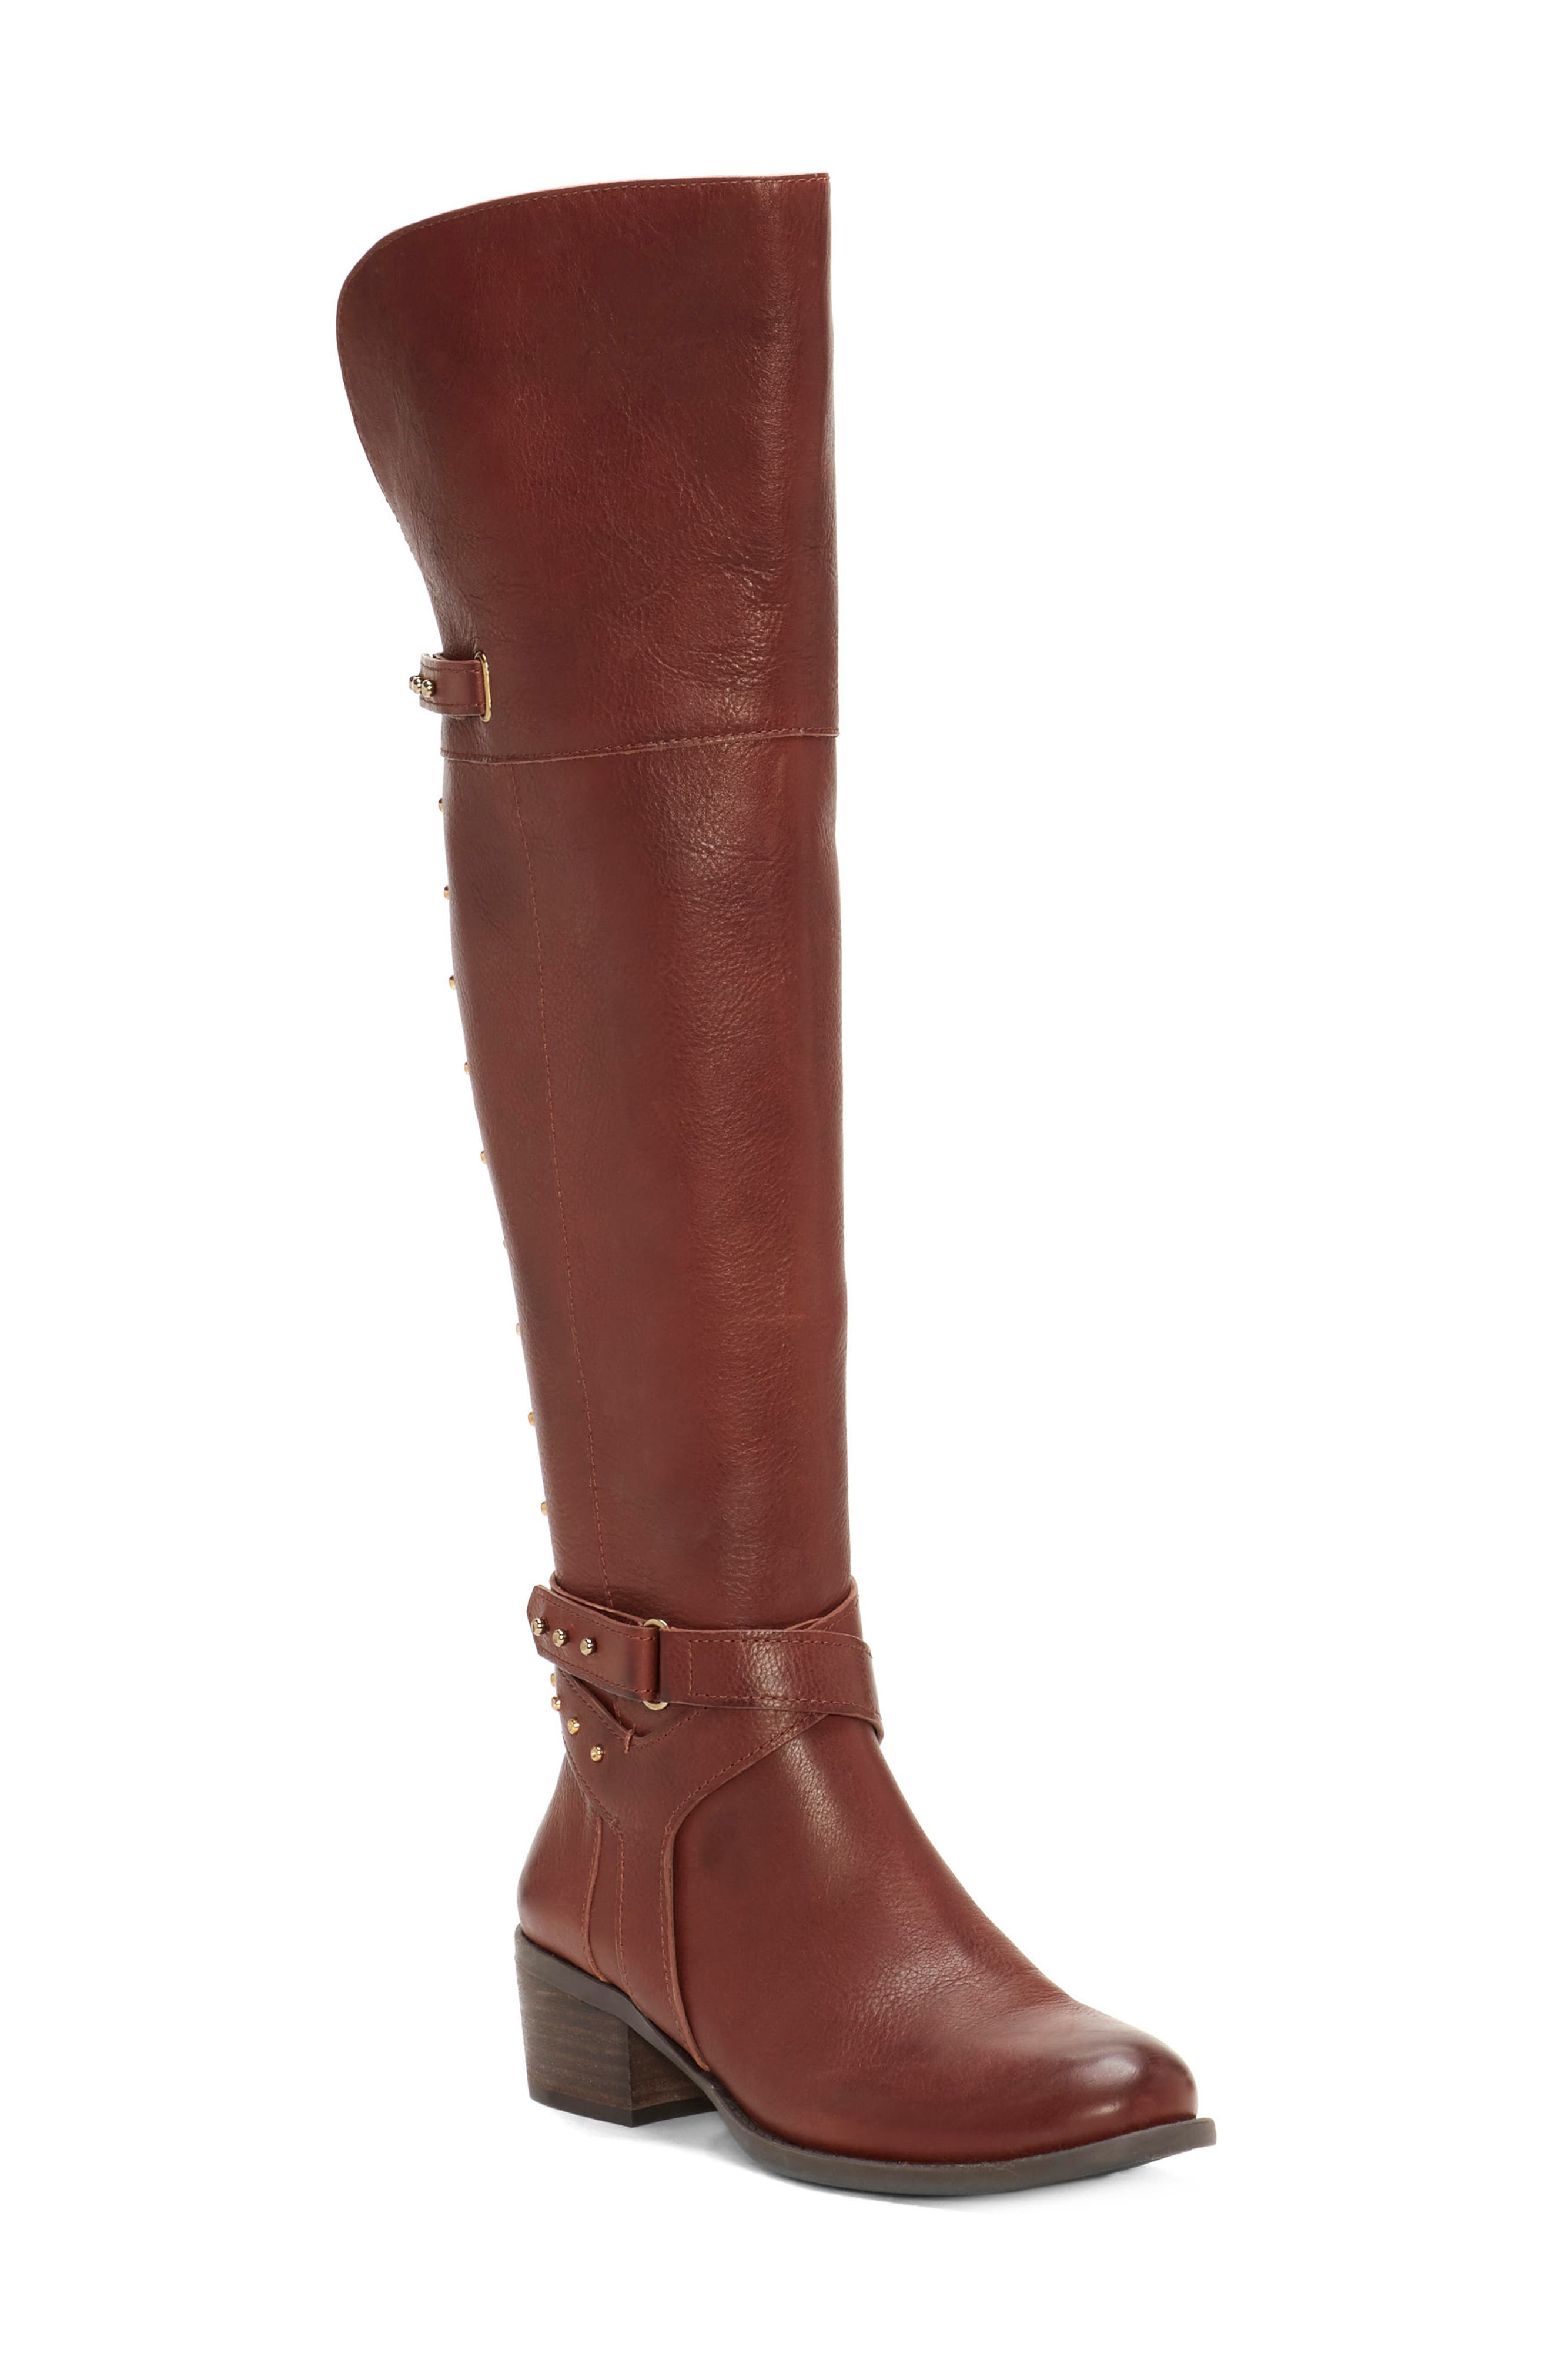 Vince Camuto Bestant Over The Knee Boot, Brown